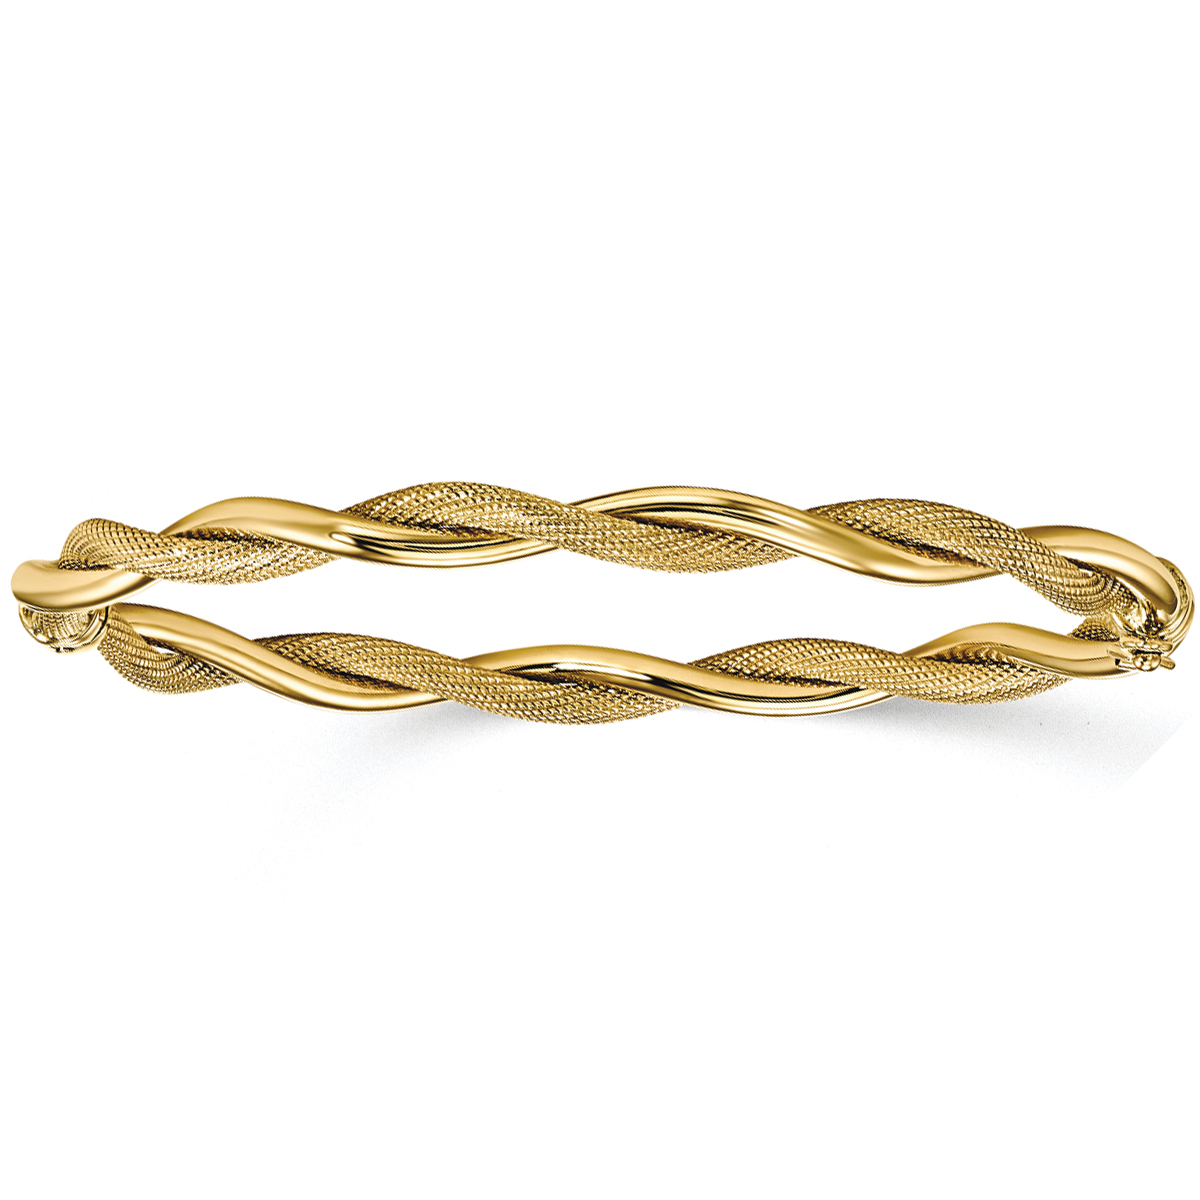 Polished textured fold over twisted bangle bracelet 14k for What is gold polished jewelry